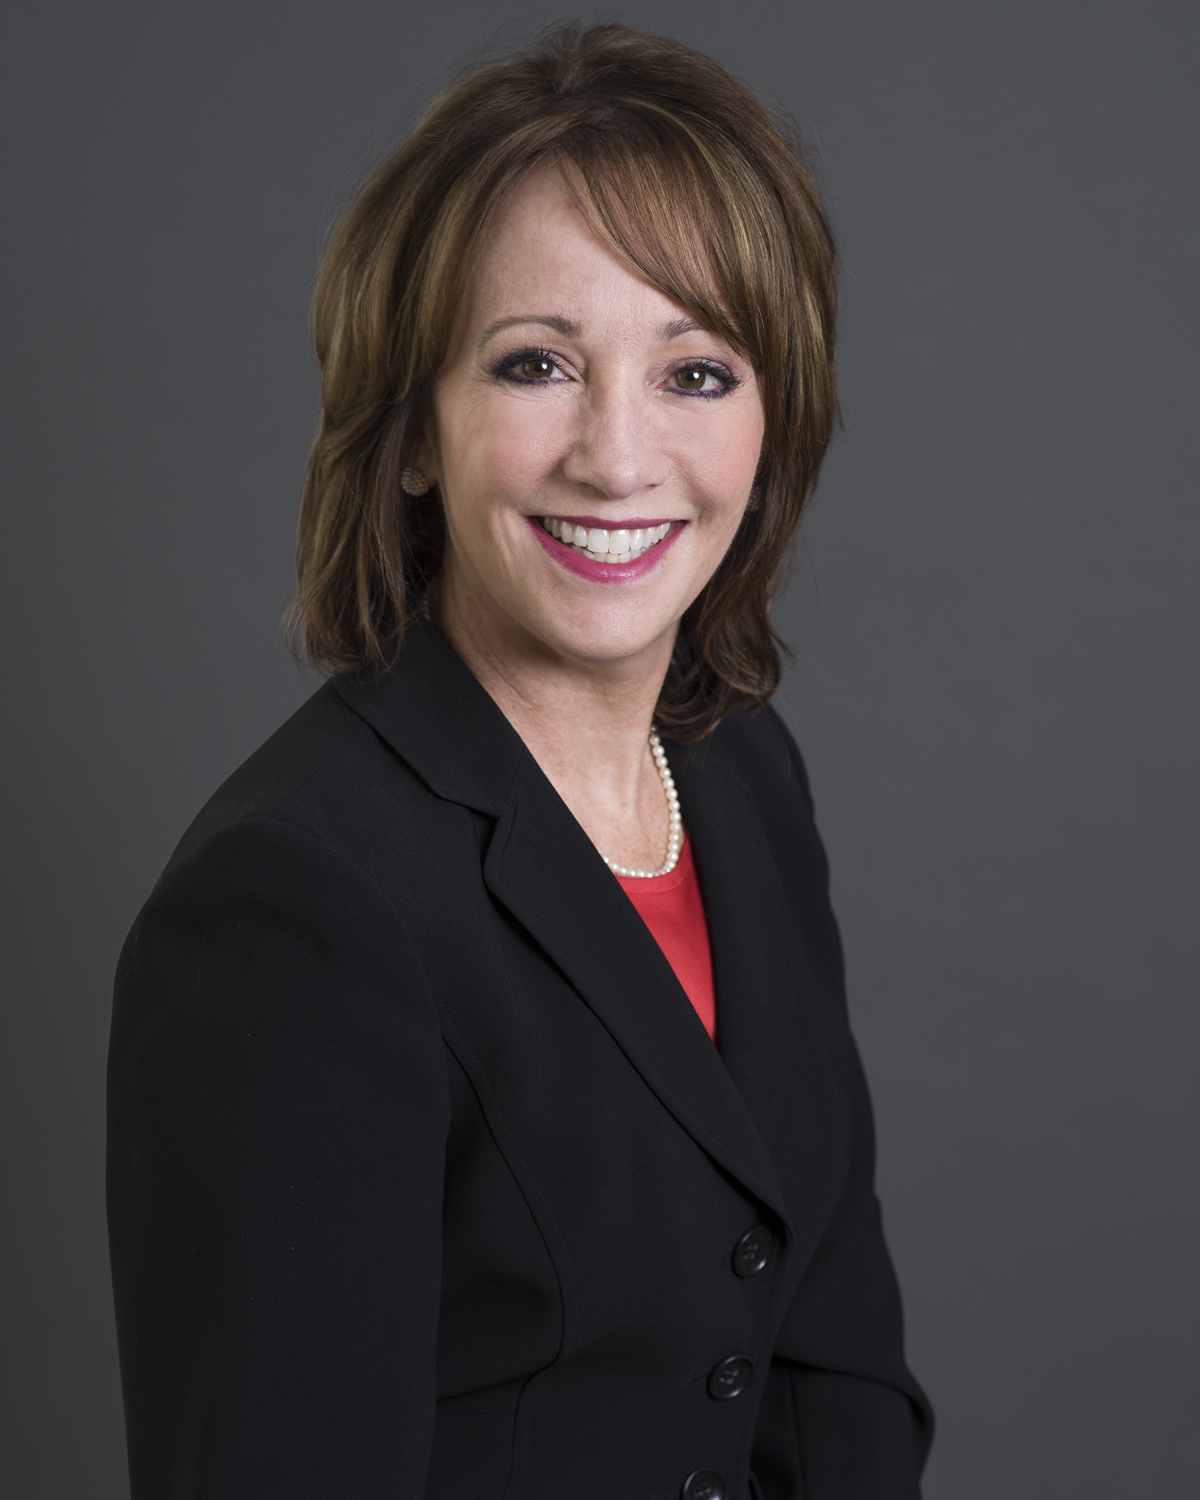 """Lisa (Bodine) Policare Ranked 91 Among Forbes """"Top 200 Women Advisors"""" in the Country. (Photo: Business Wire)"""